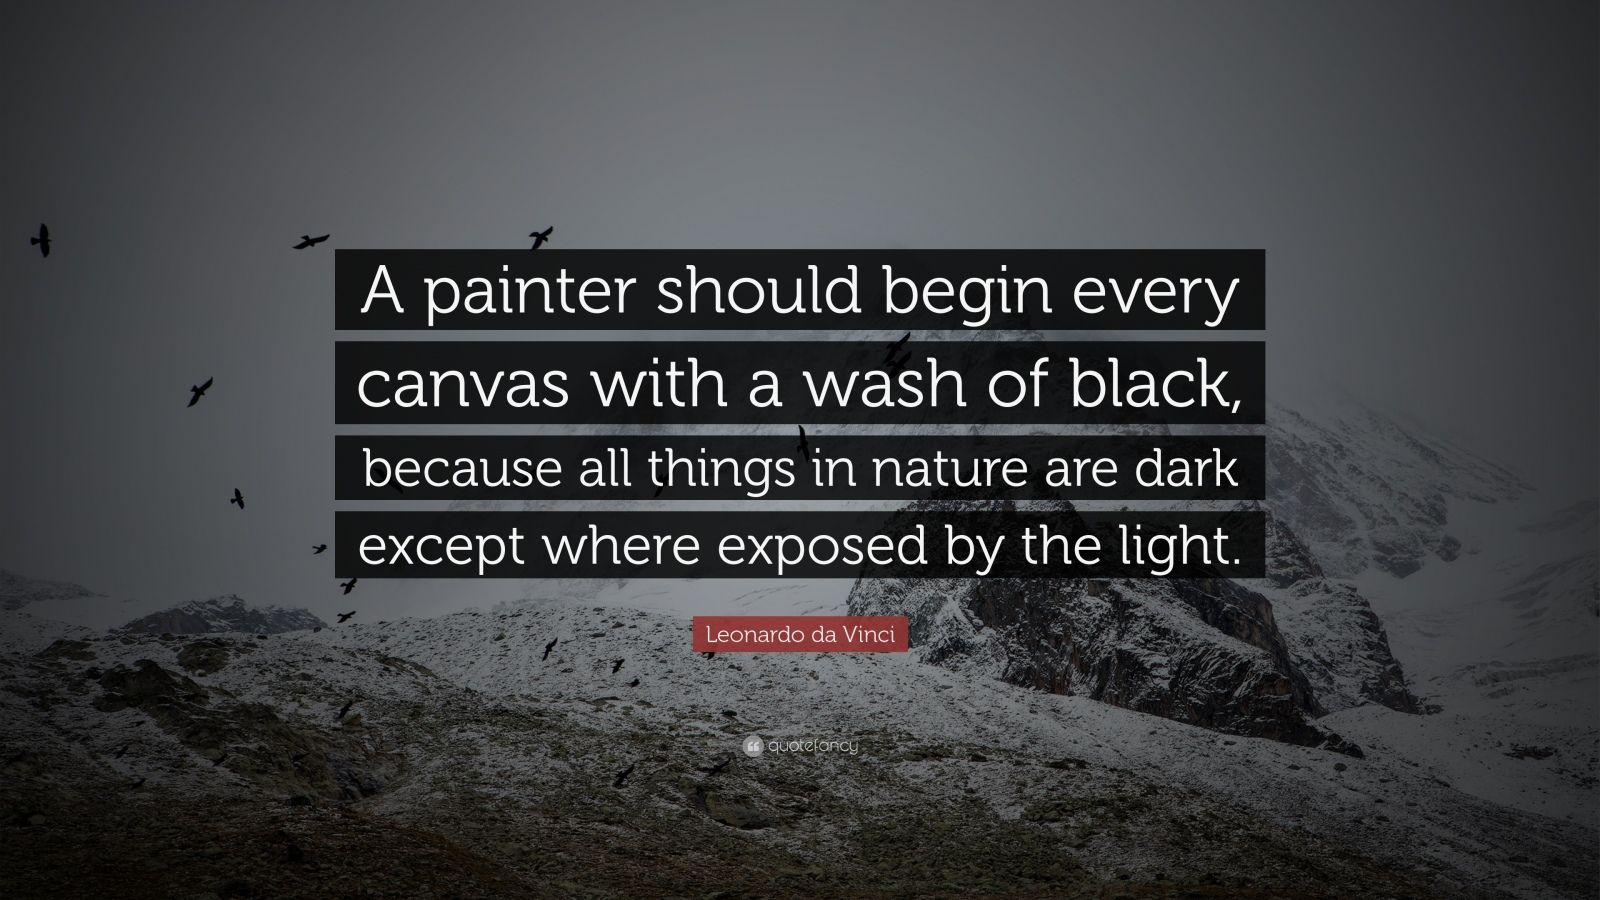 """Leonardo da Vinci Quote: """"A painter should begin every canvas with a wash of black, because all things in nature are dark except where exposed by the light."""""""